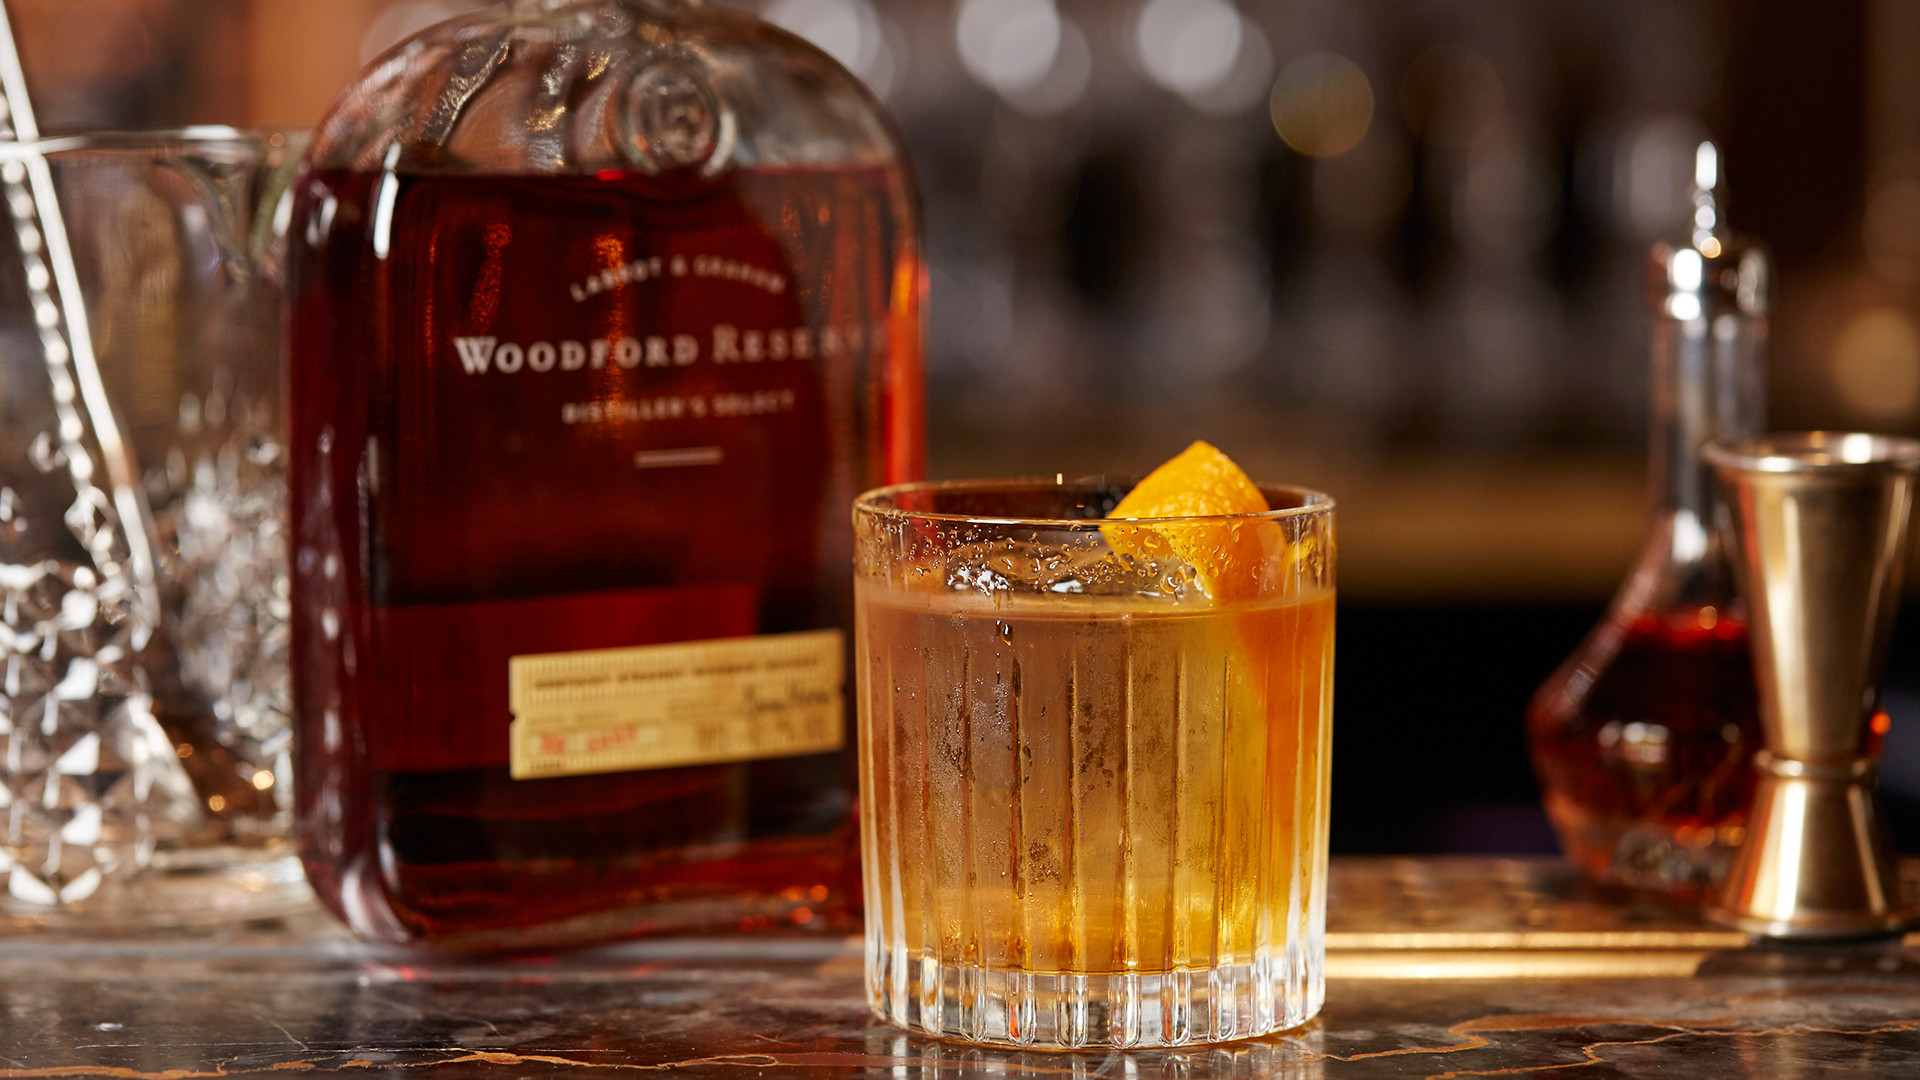 The Woodford Alliance